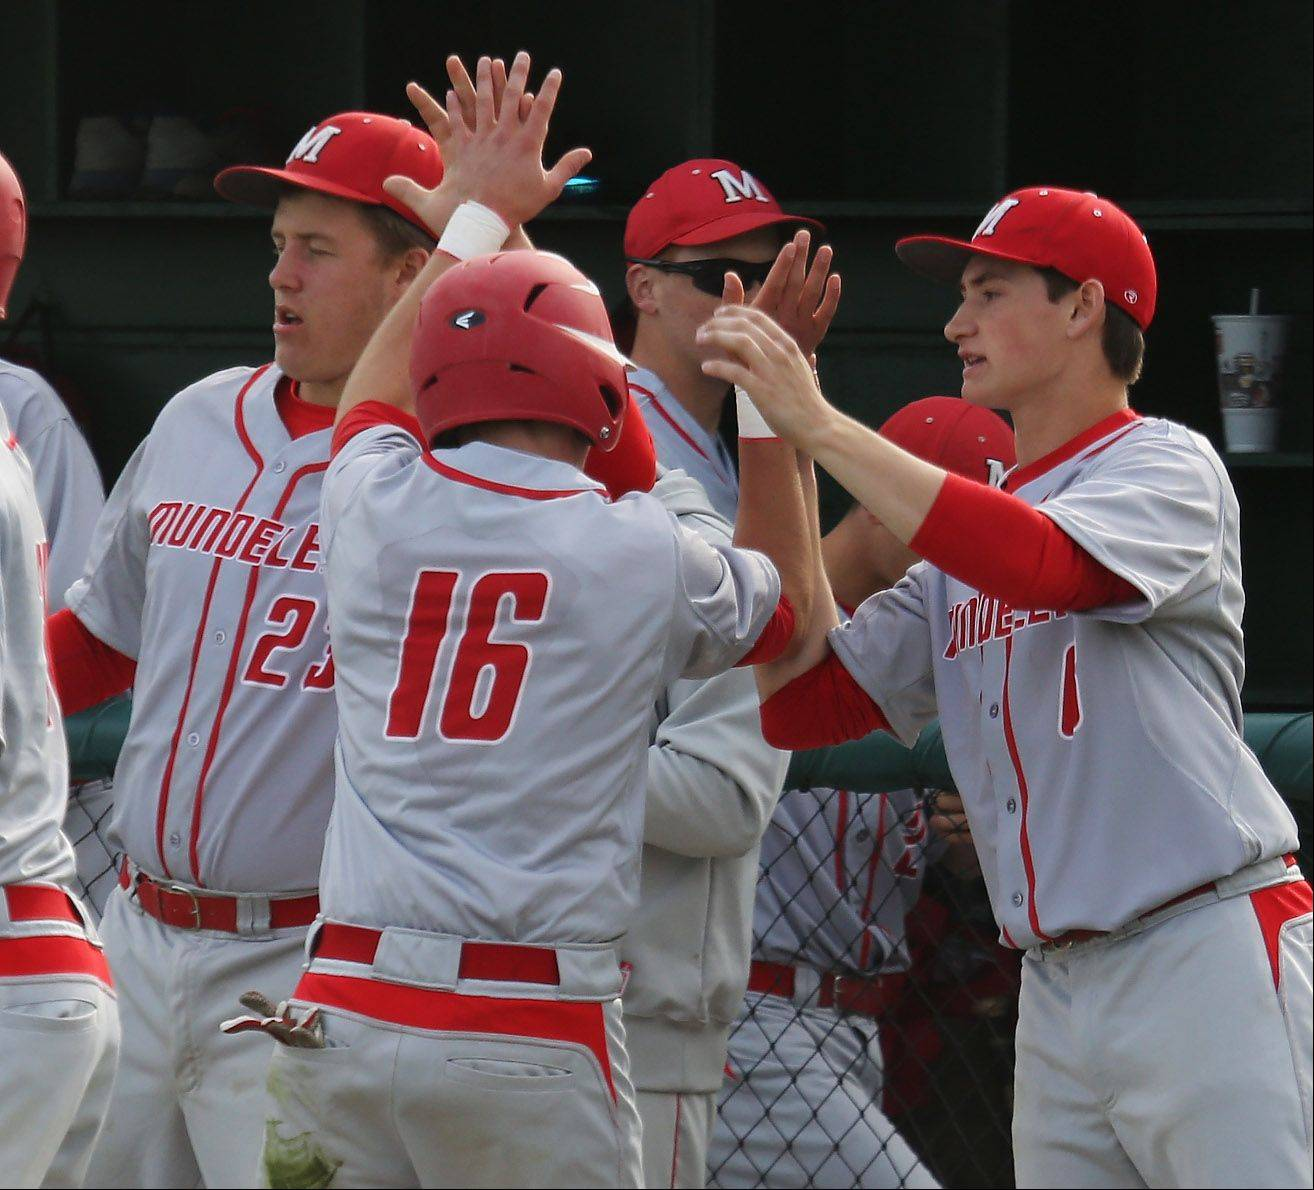 Mundelein player Mike Metz is congratulated by teammates after scoring the Mustangs' second run Monday against Stevenson.